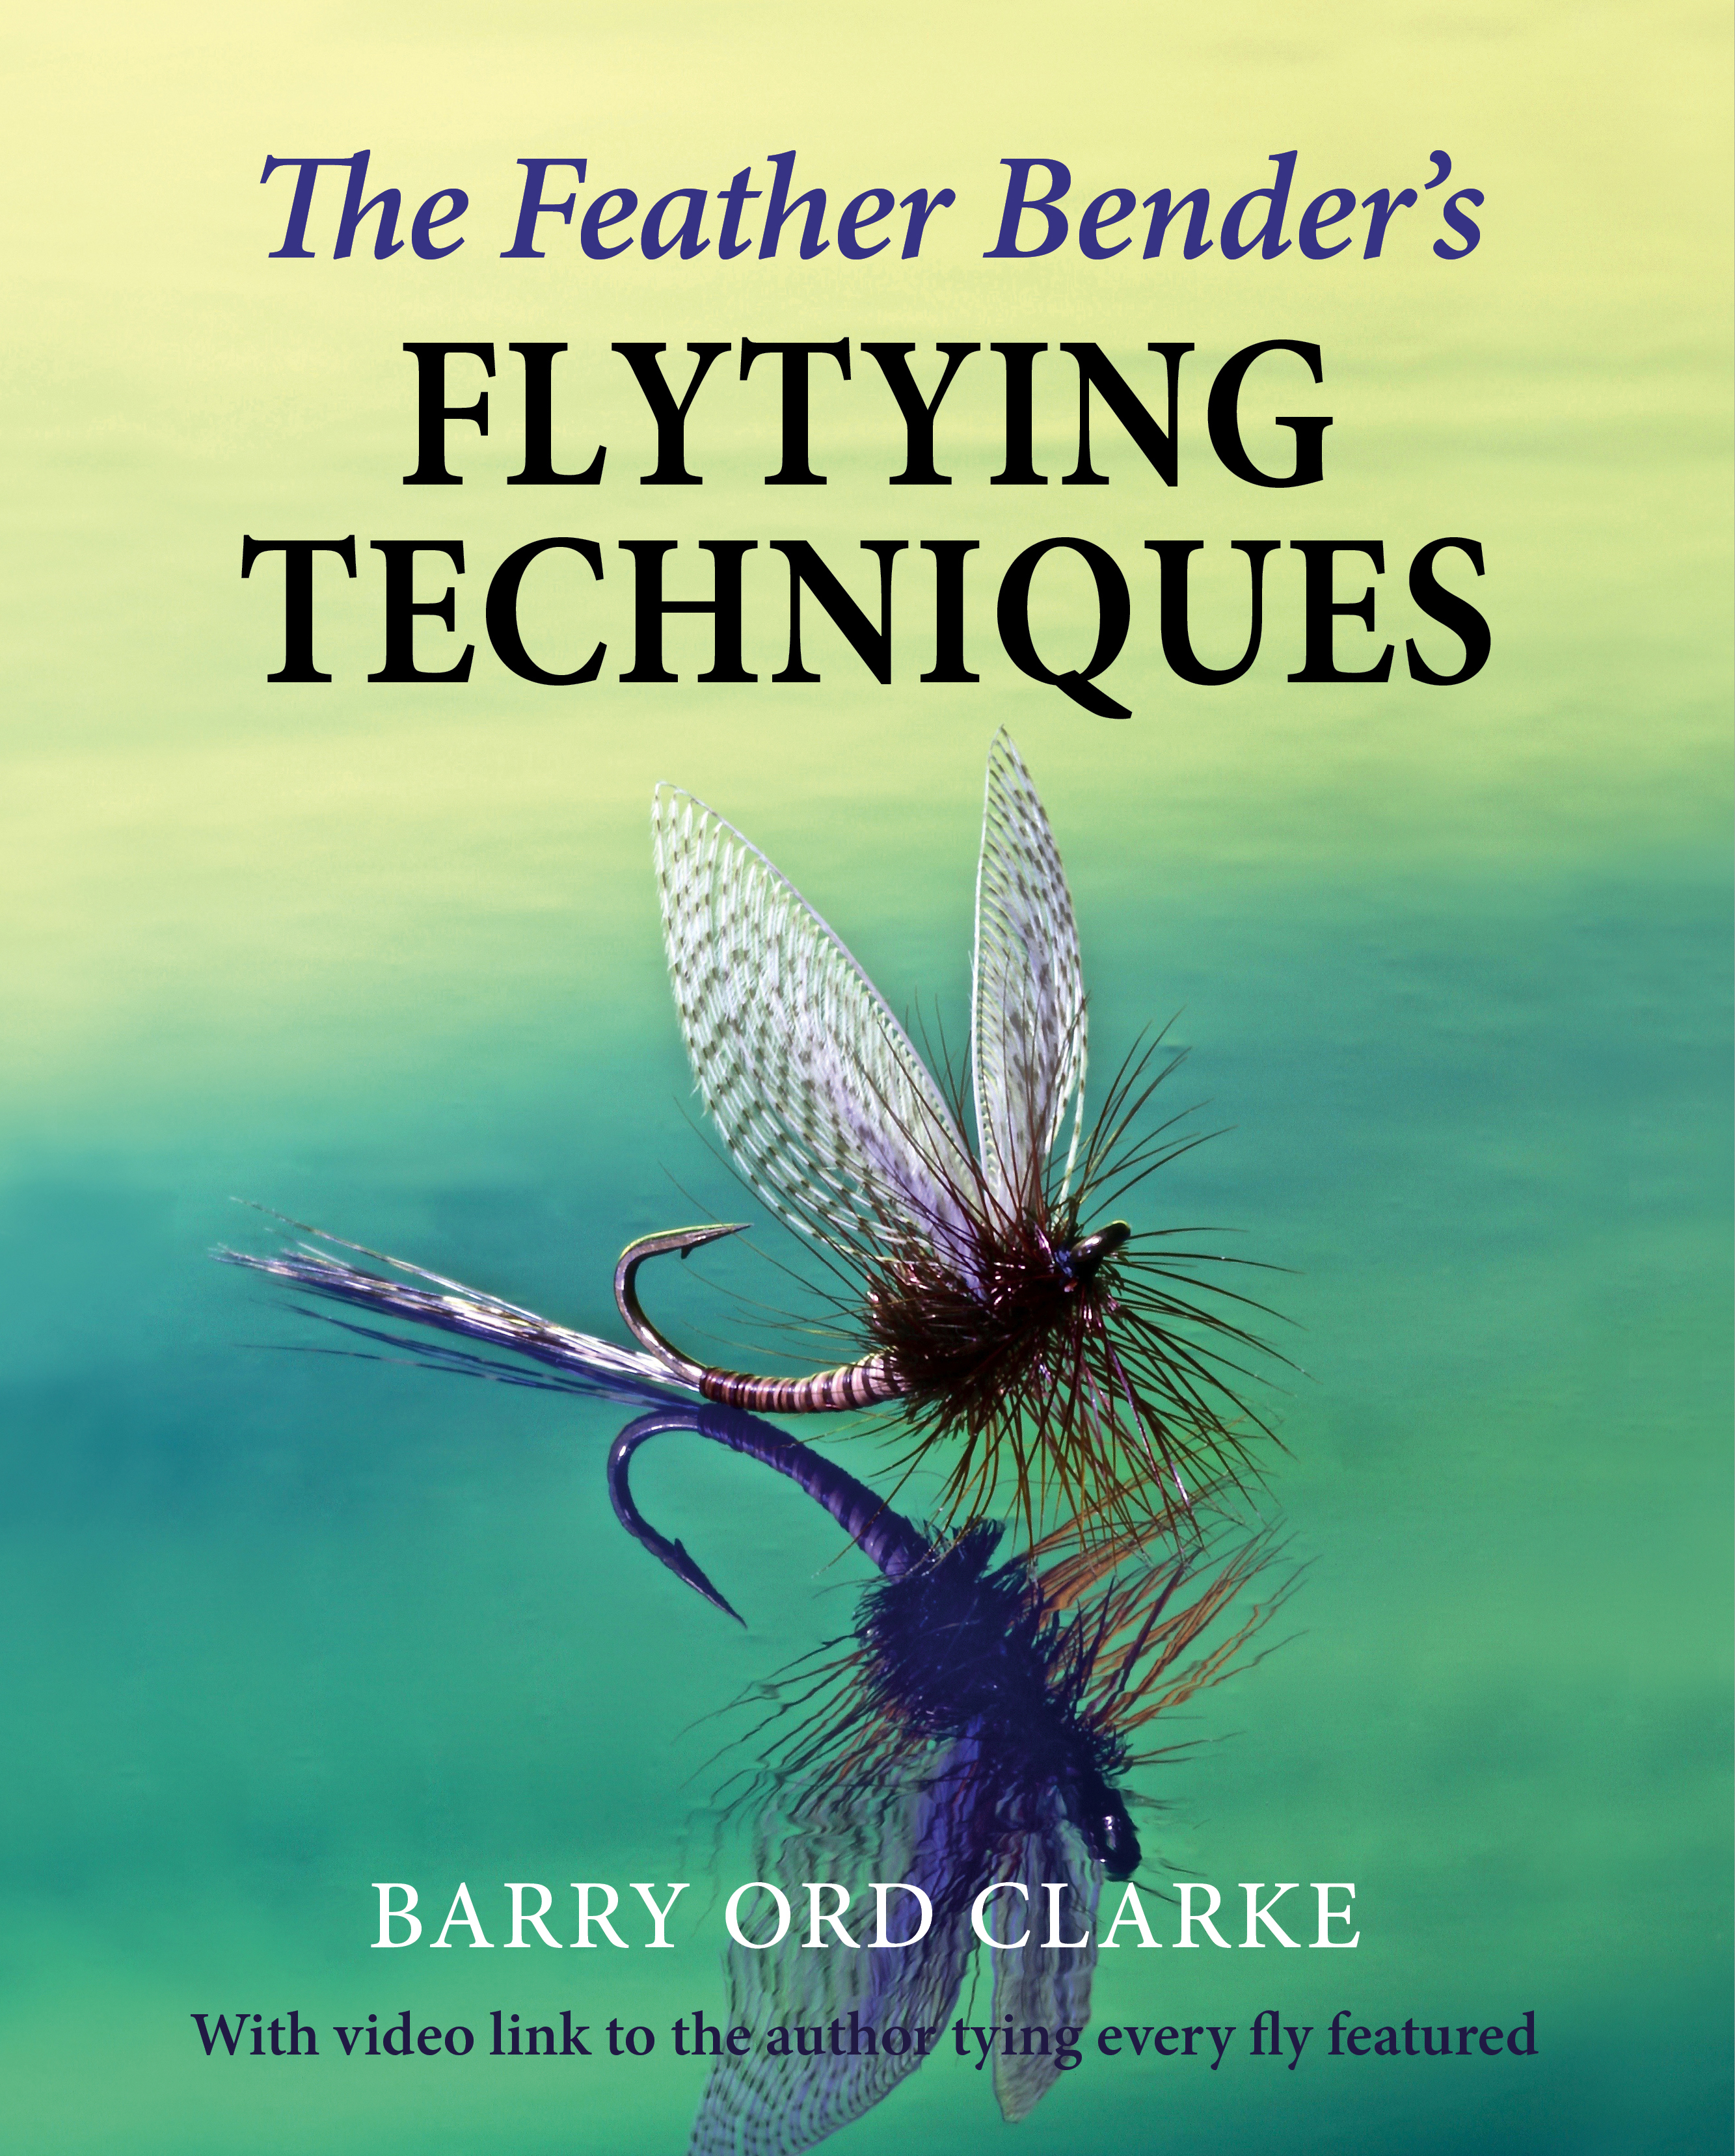 Feather Bender's Flytying Techniques